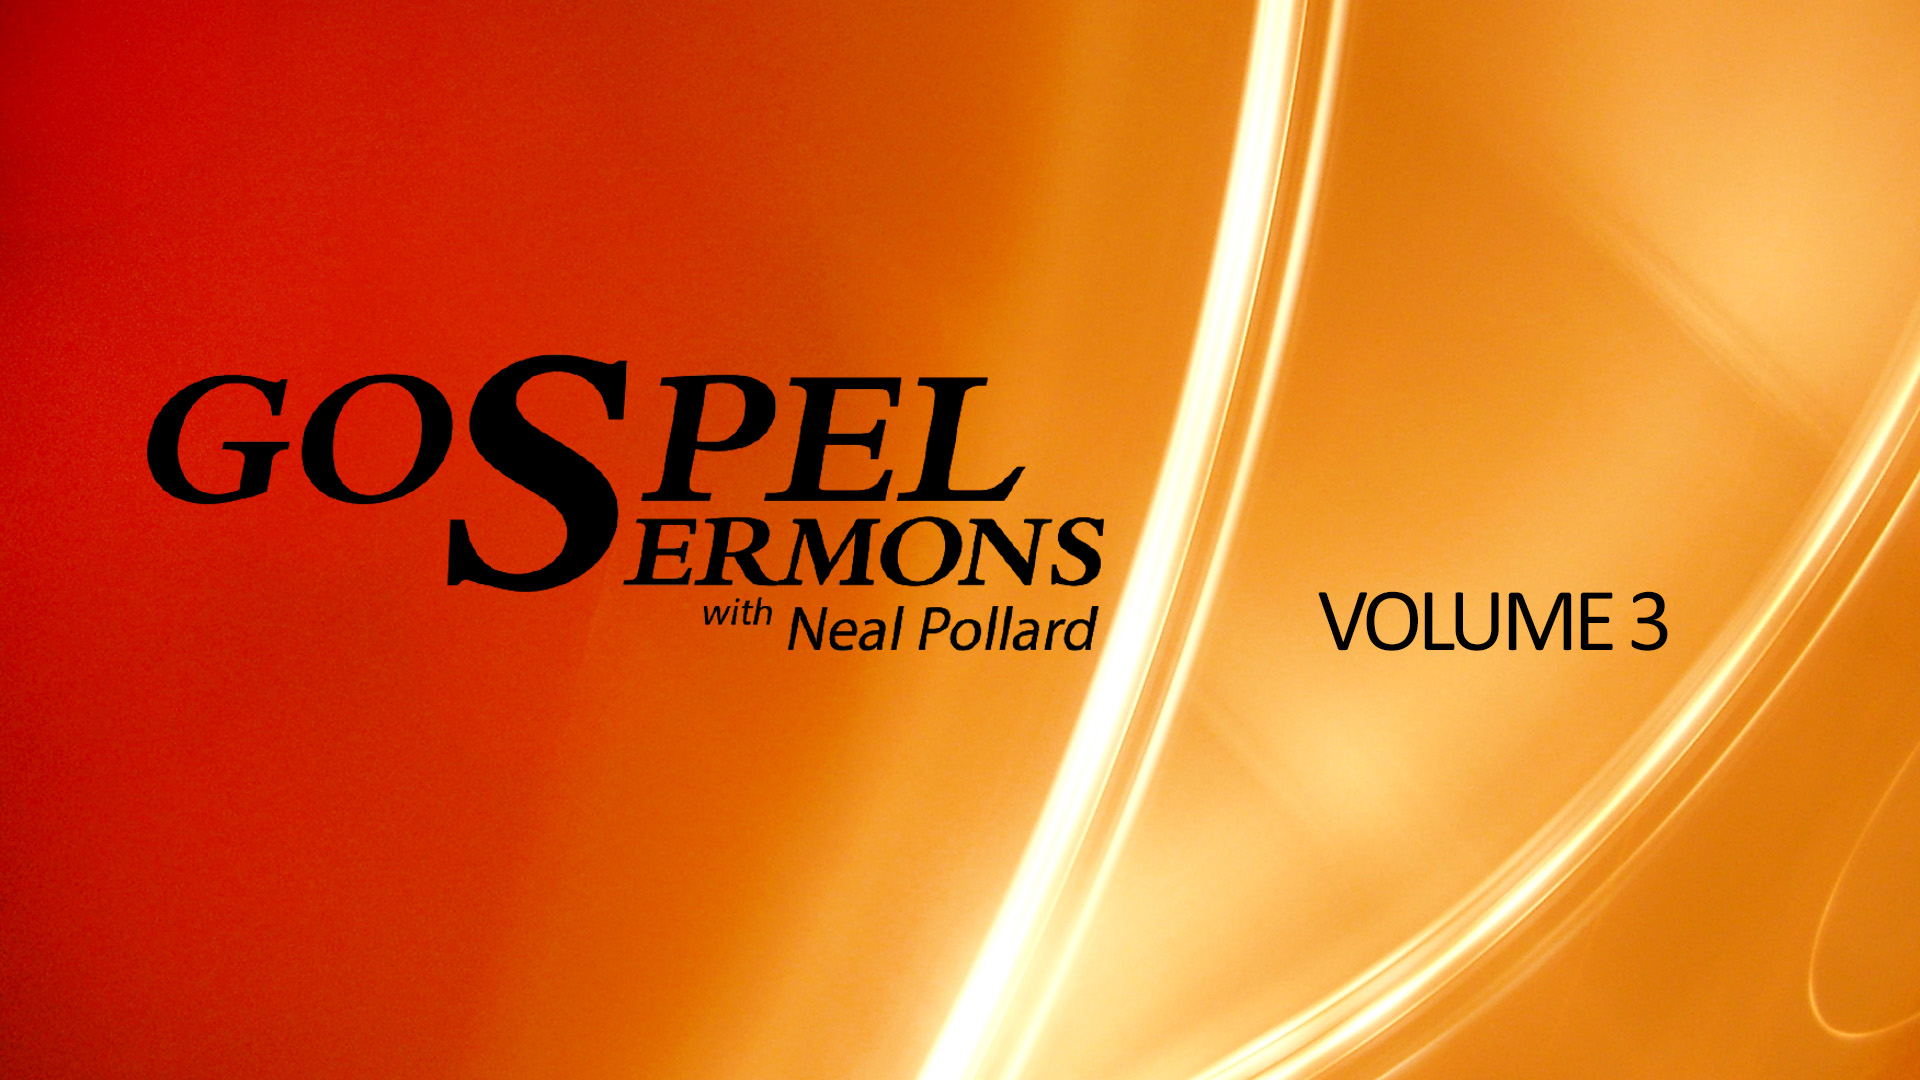 Sermons by Neal Pollard (Volume 3)